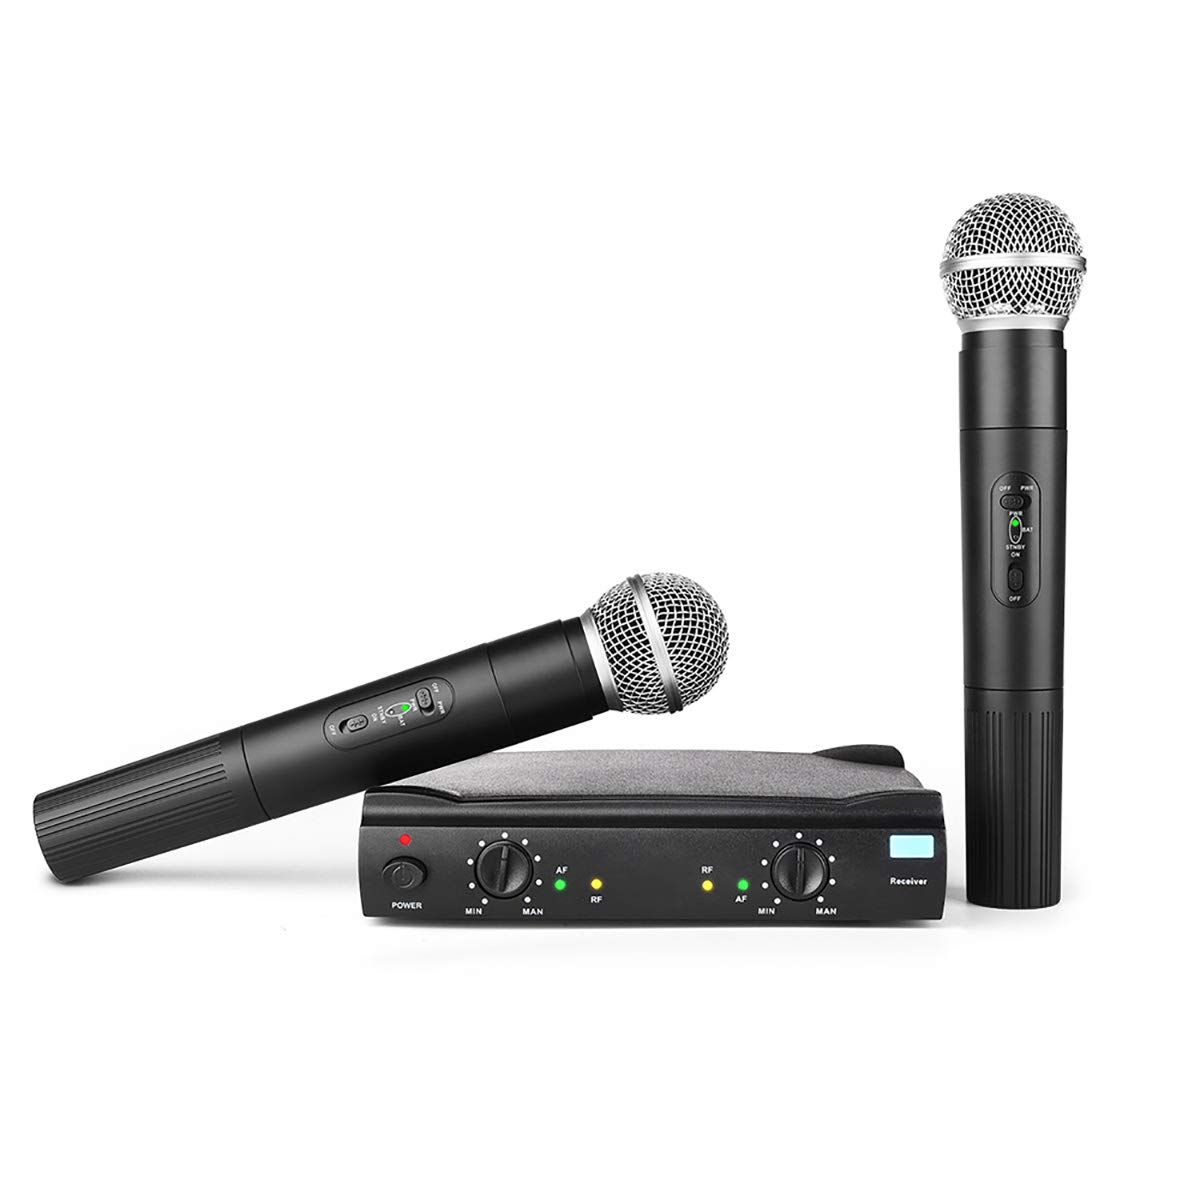 Professional Vocal Wireless Microphone System, Frunsi AMR AM-27 Dual Dynamic VHF Cordless Handheld Microphone with Multiport Receiver, Long Range Wireless Signal for Karaoke, Sing, DJ, Church, Wedding by Frunsi